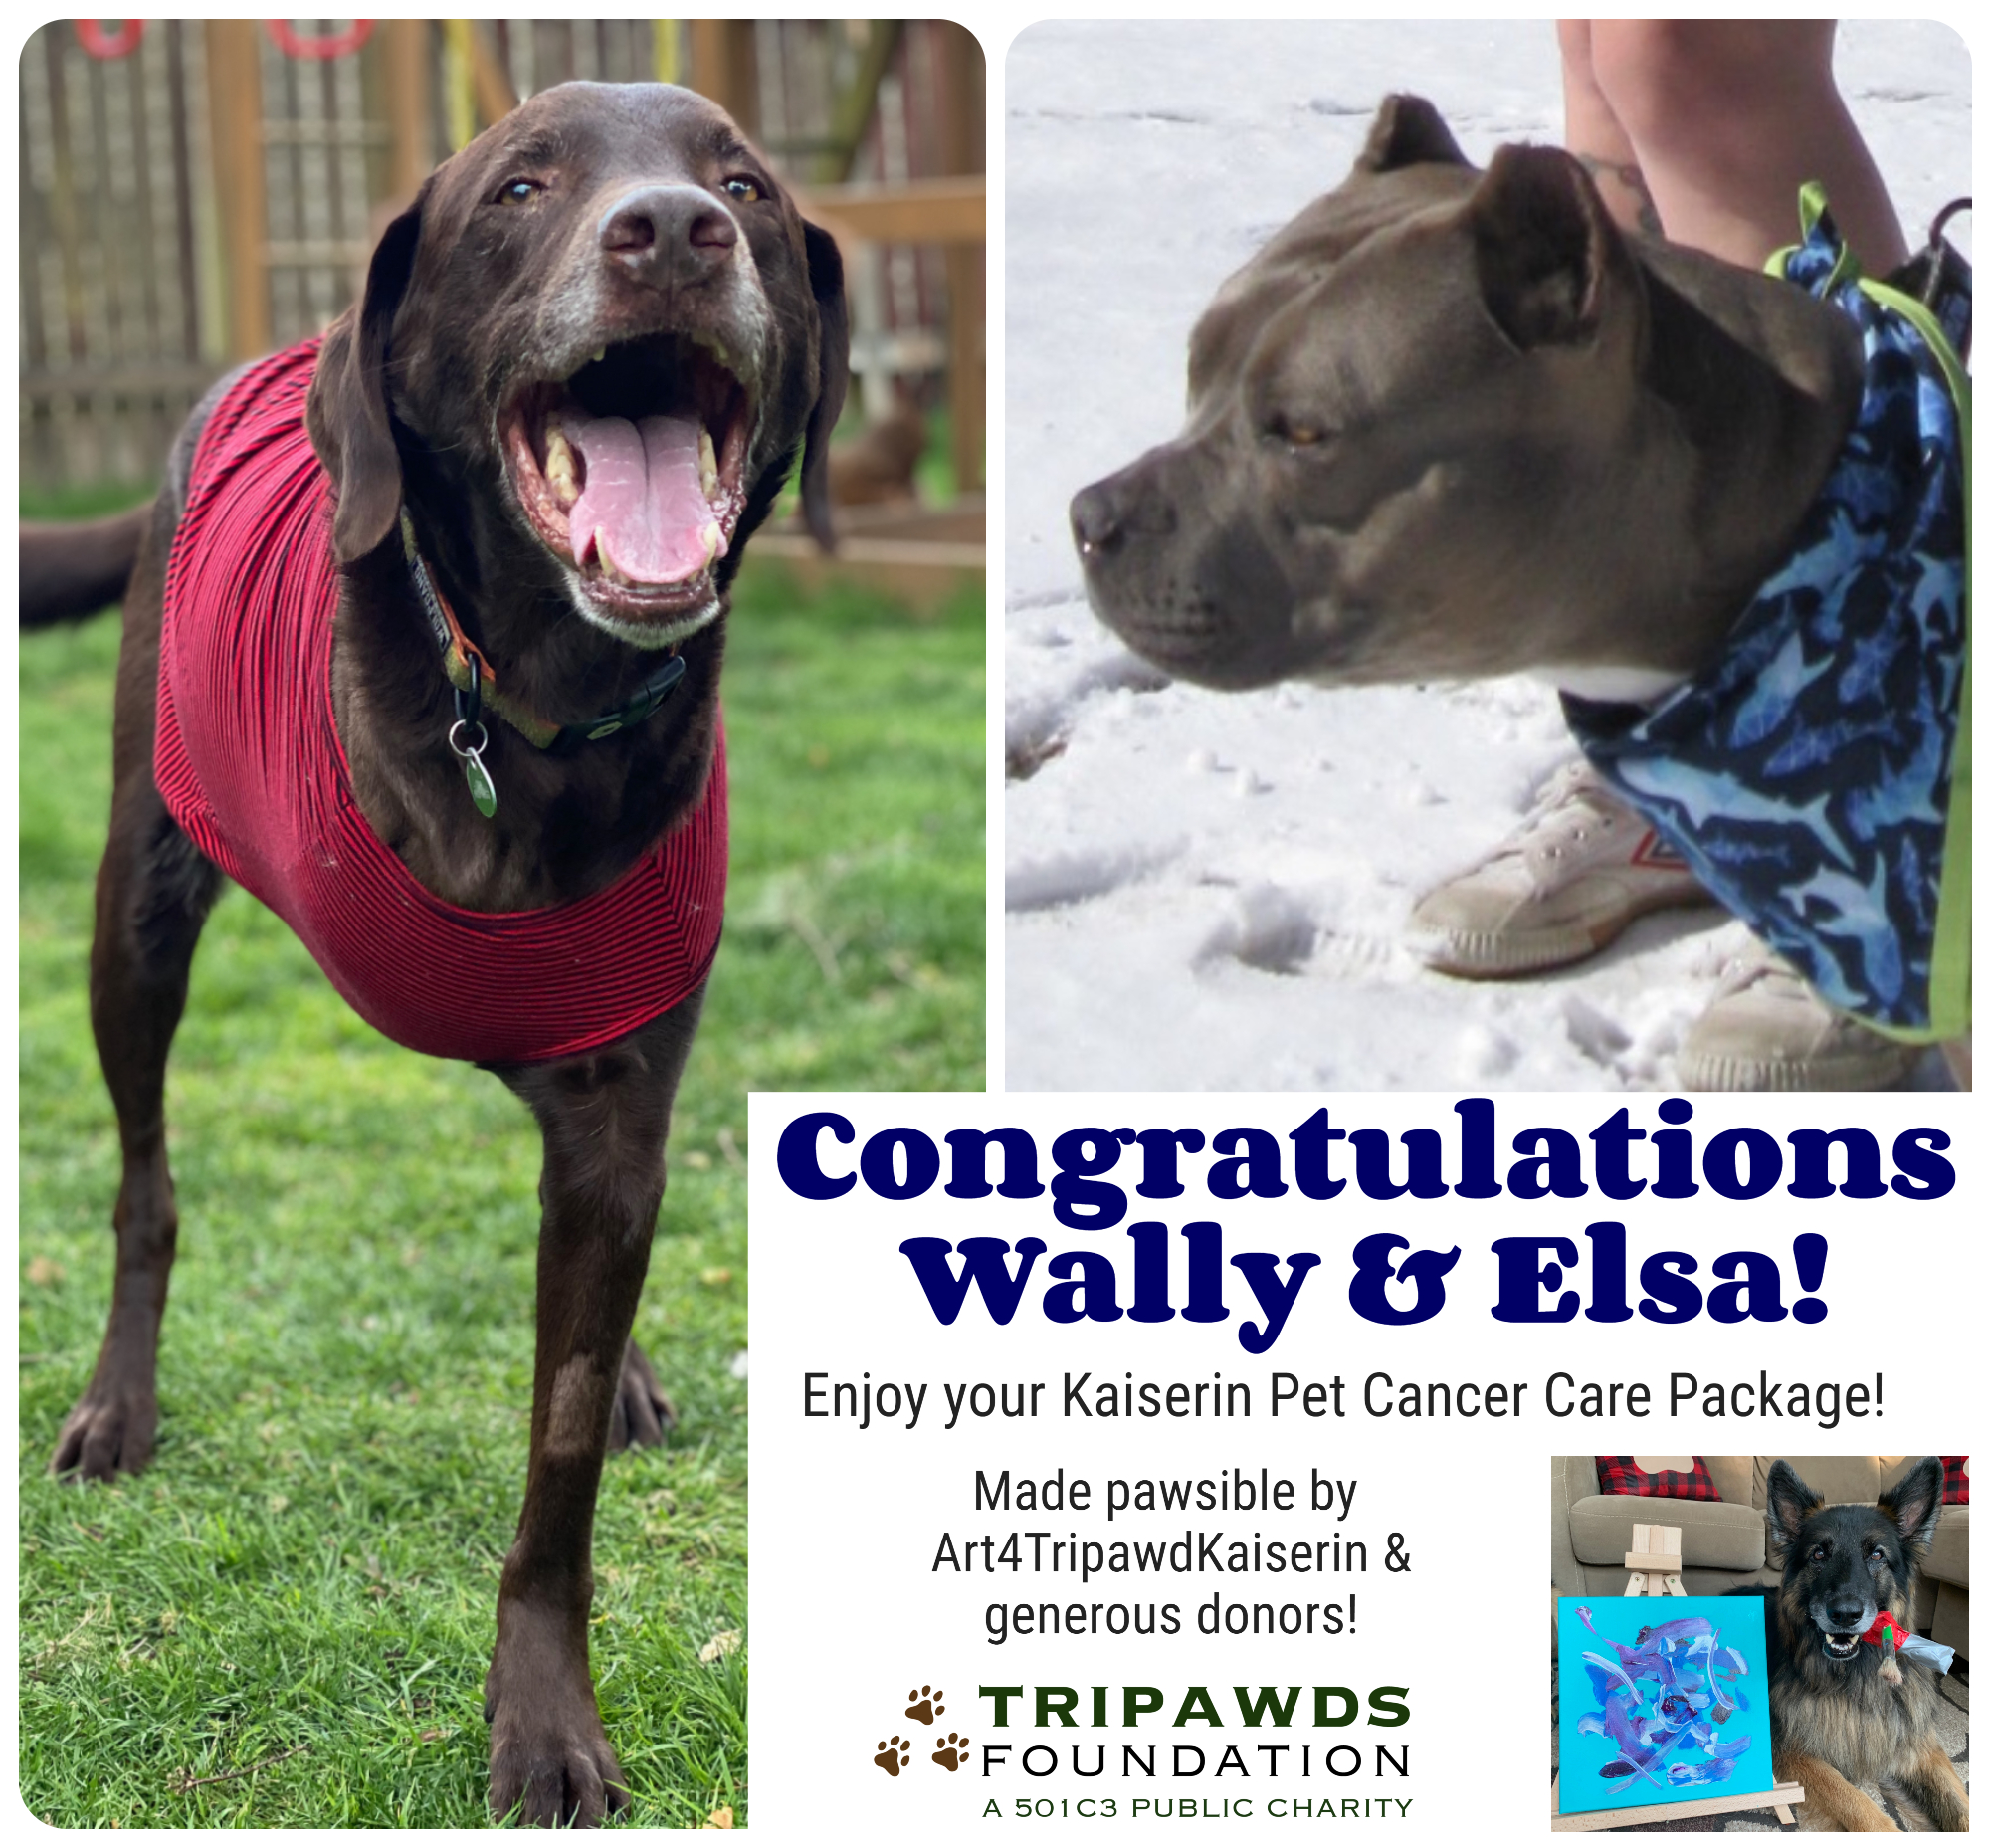 Kaiserin Pet Cancer Care Package Tripawds